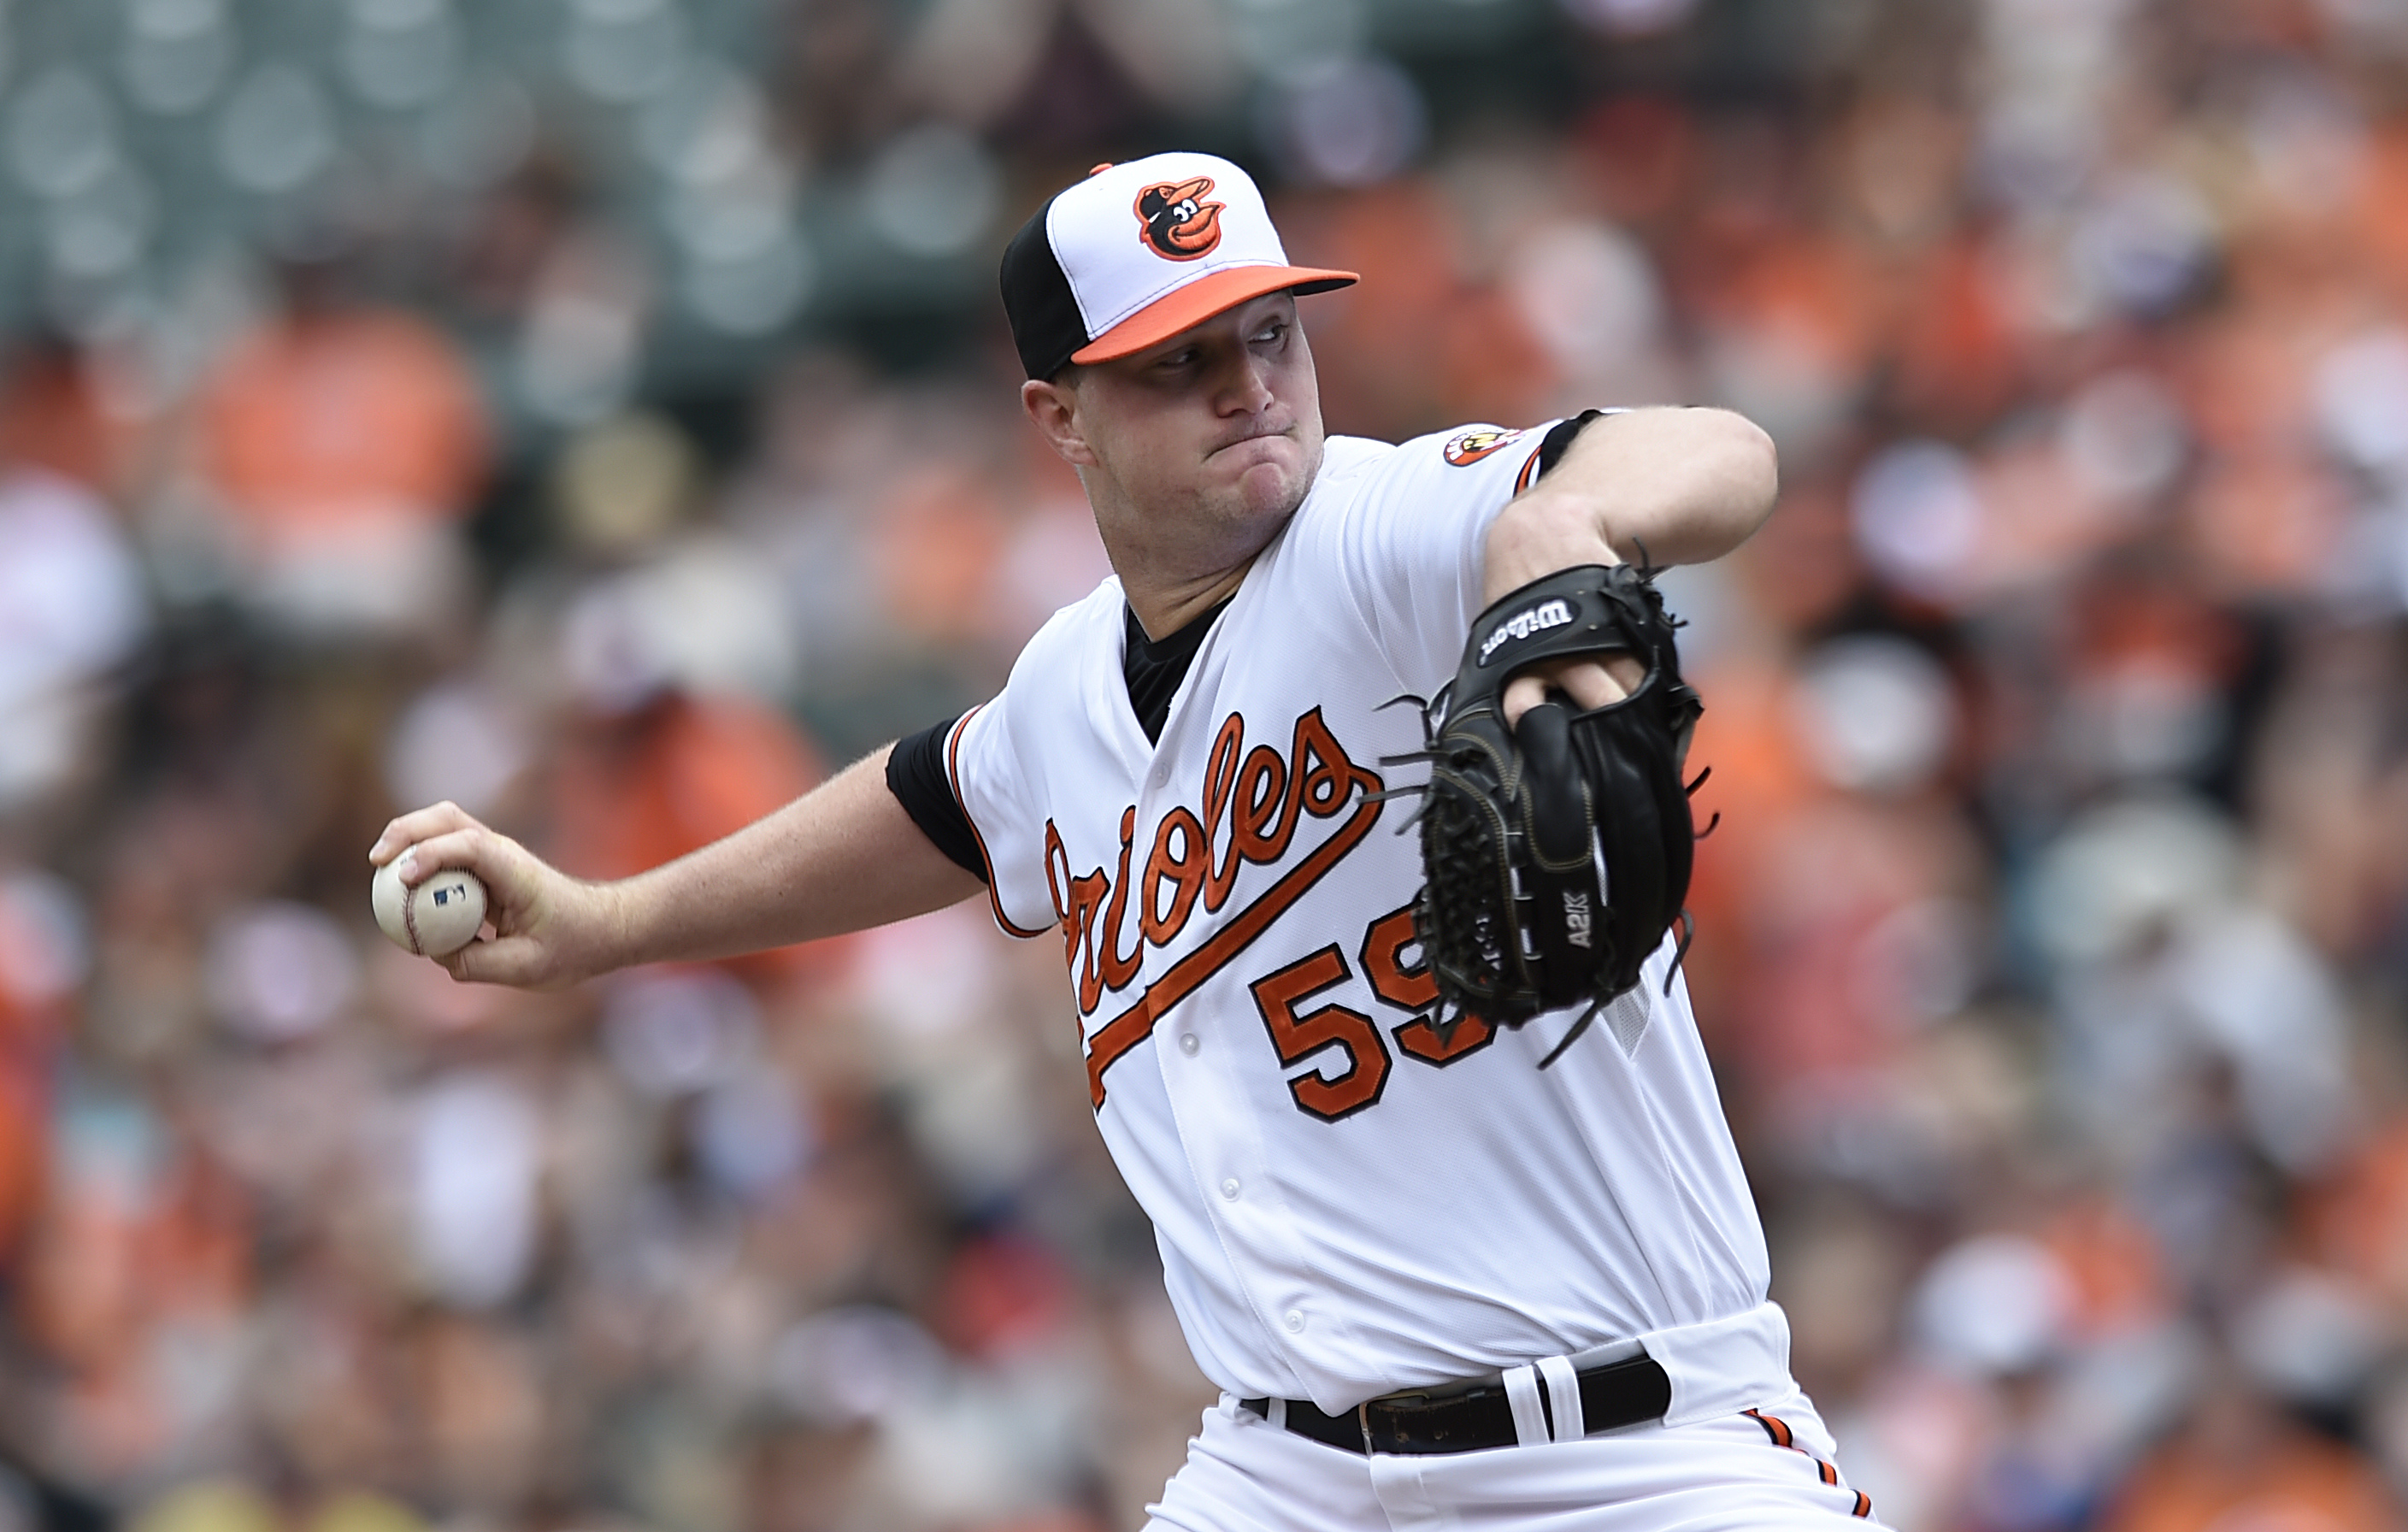 Baltimore Orioles starting pitcher Mike Wright makes his major league debut against the Los Angeles Angels in the first inning of a baseball game Sunday, May 17, 2015, in Baltimore. (AP Photo/Gail Burton)